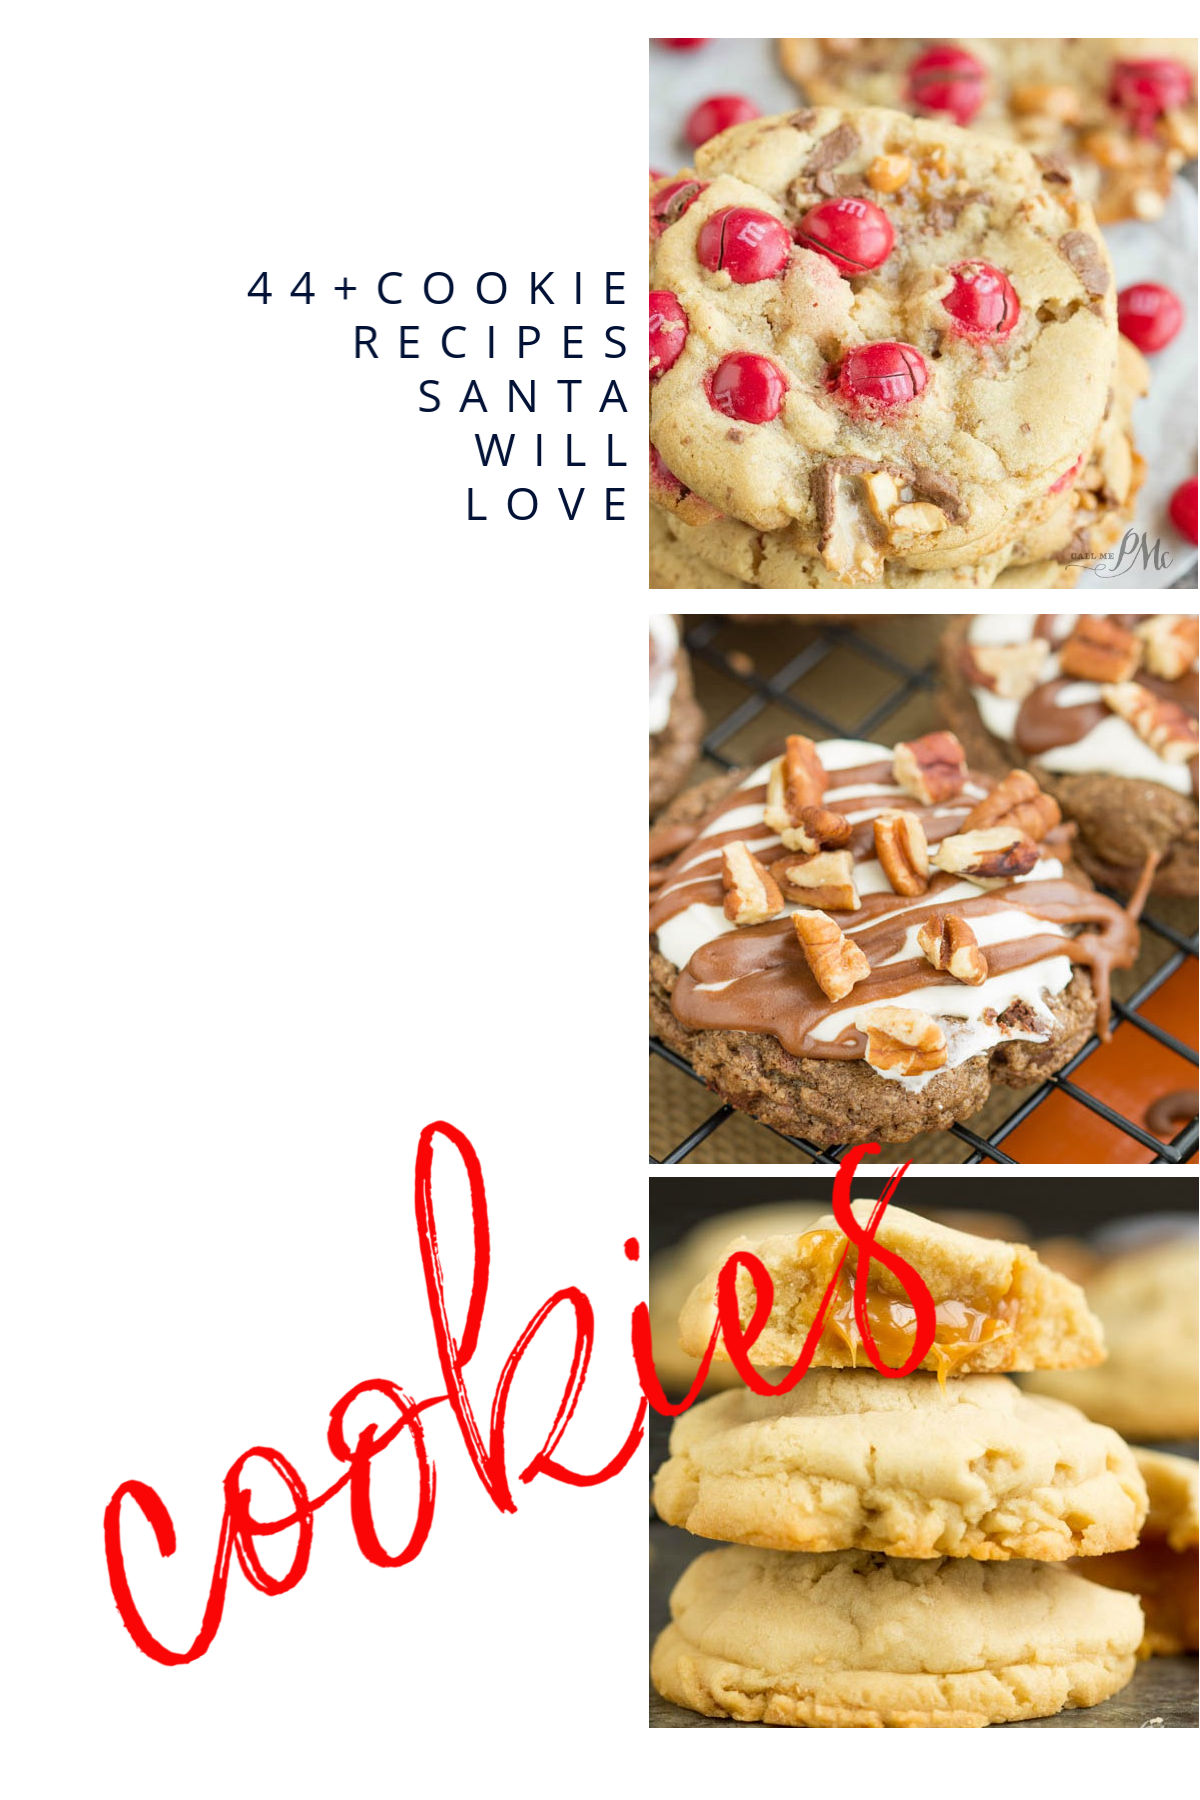 Cookie Recipes Santa will Love, the best collection of Santa's and everyone's favorite cookie recipes. Easy and fun to make and delicious to eat! #cookies #Christmascookies #cookieexchange #cookieparty #dessert #baking #easy via @pmctunejones